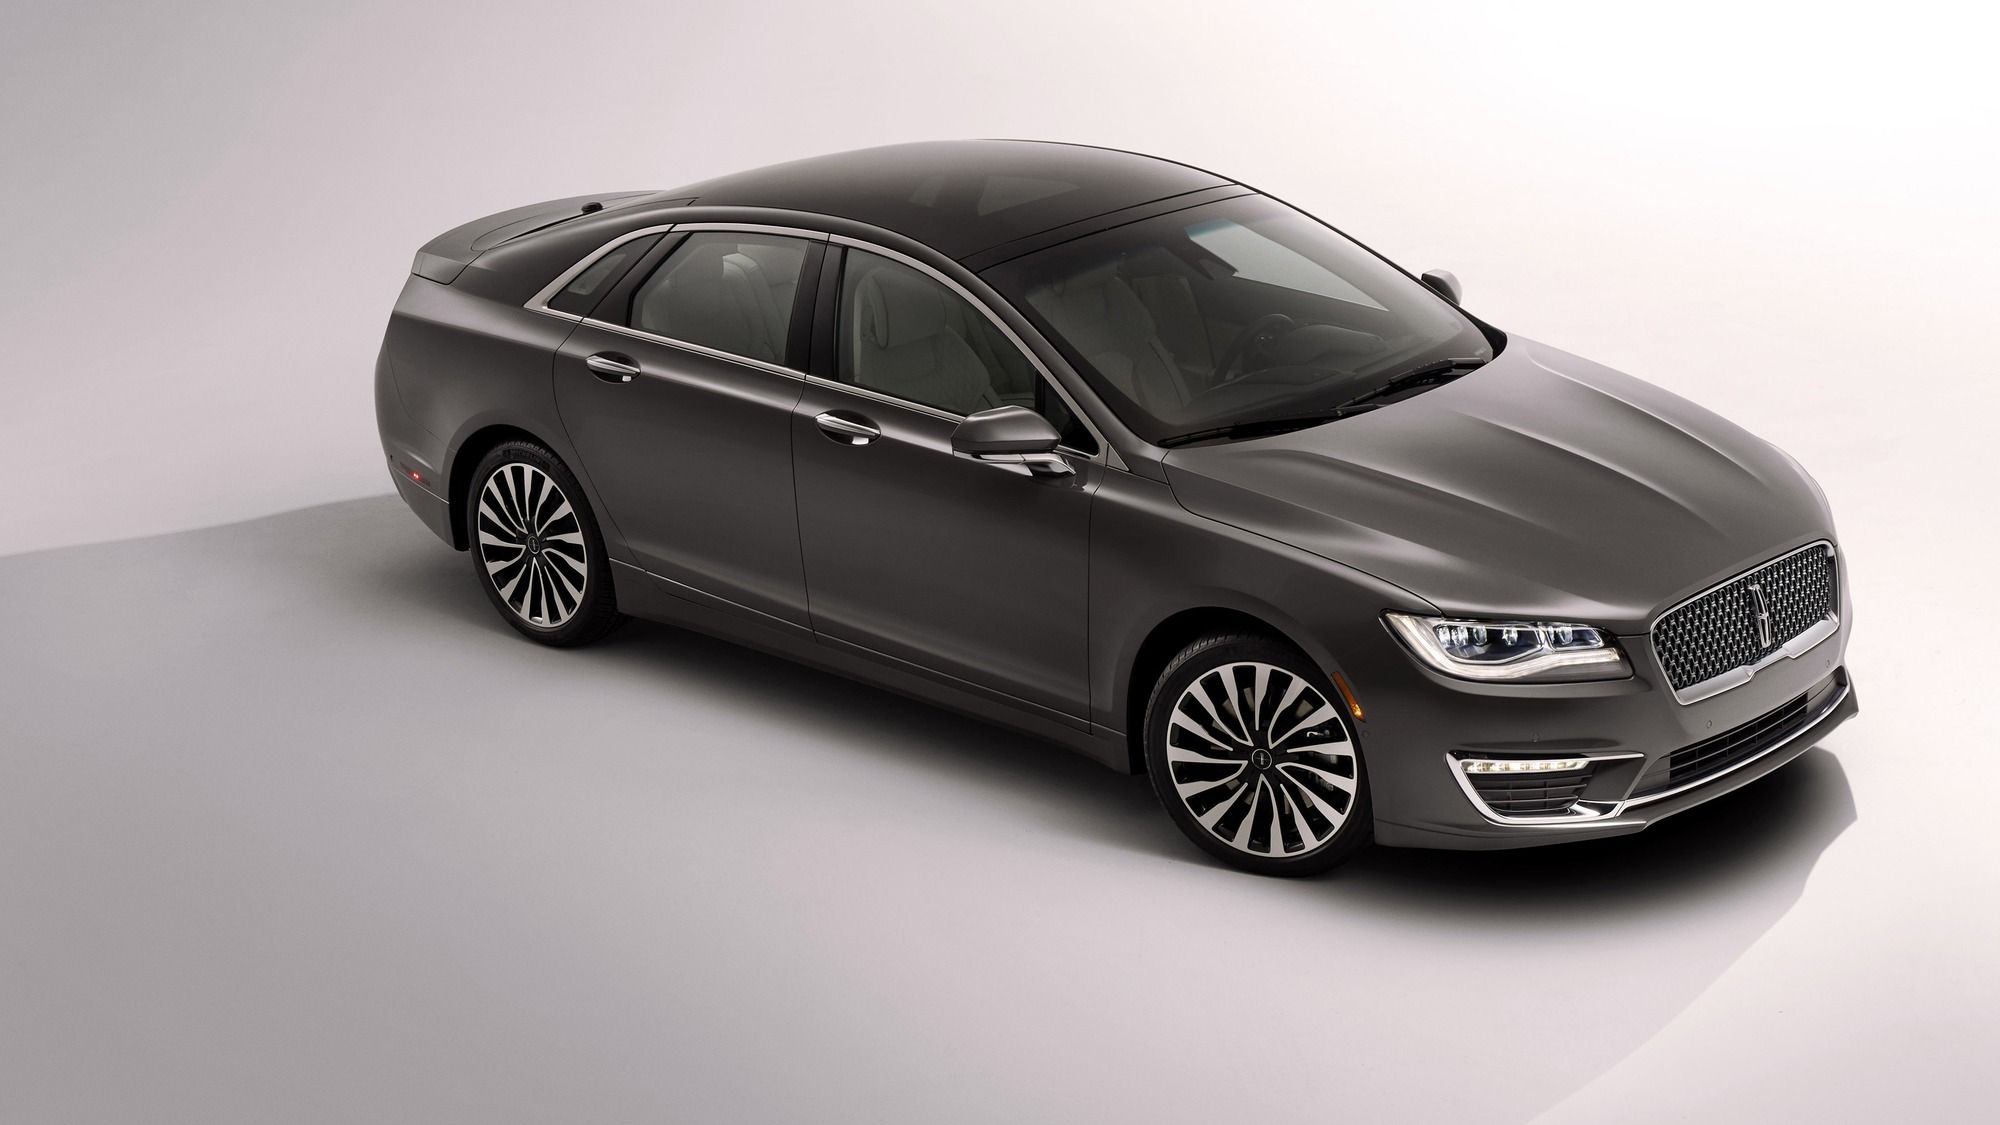 29 Best 2020 Spy Shots Lincoln Mkz Sedan Model